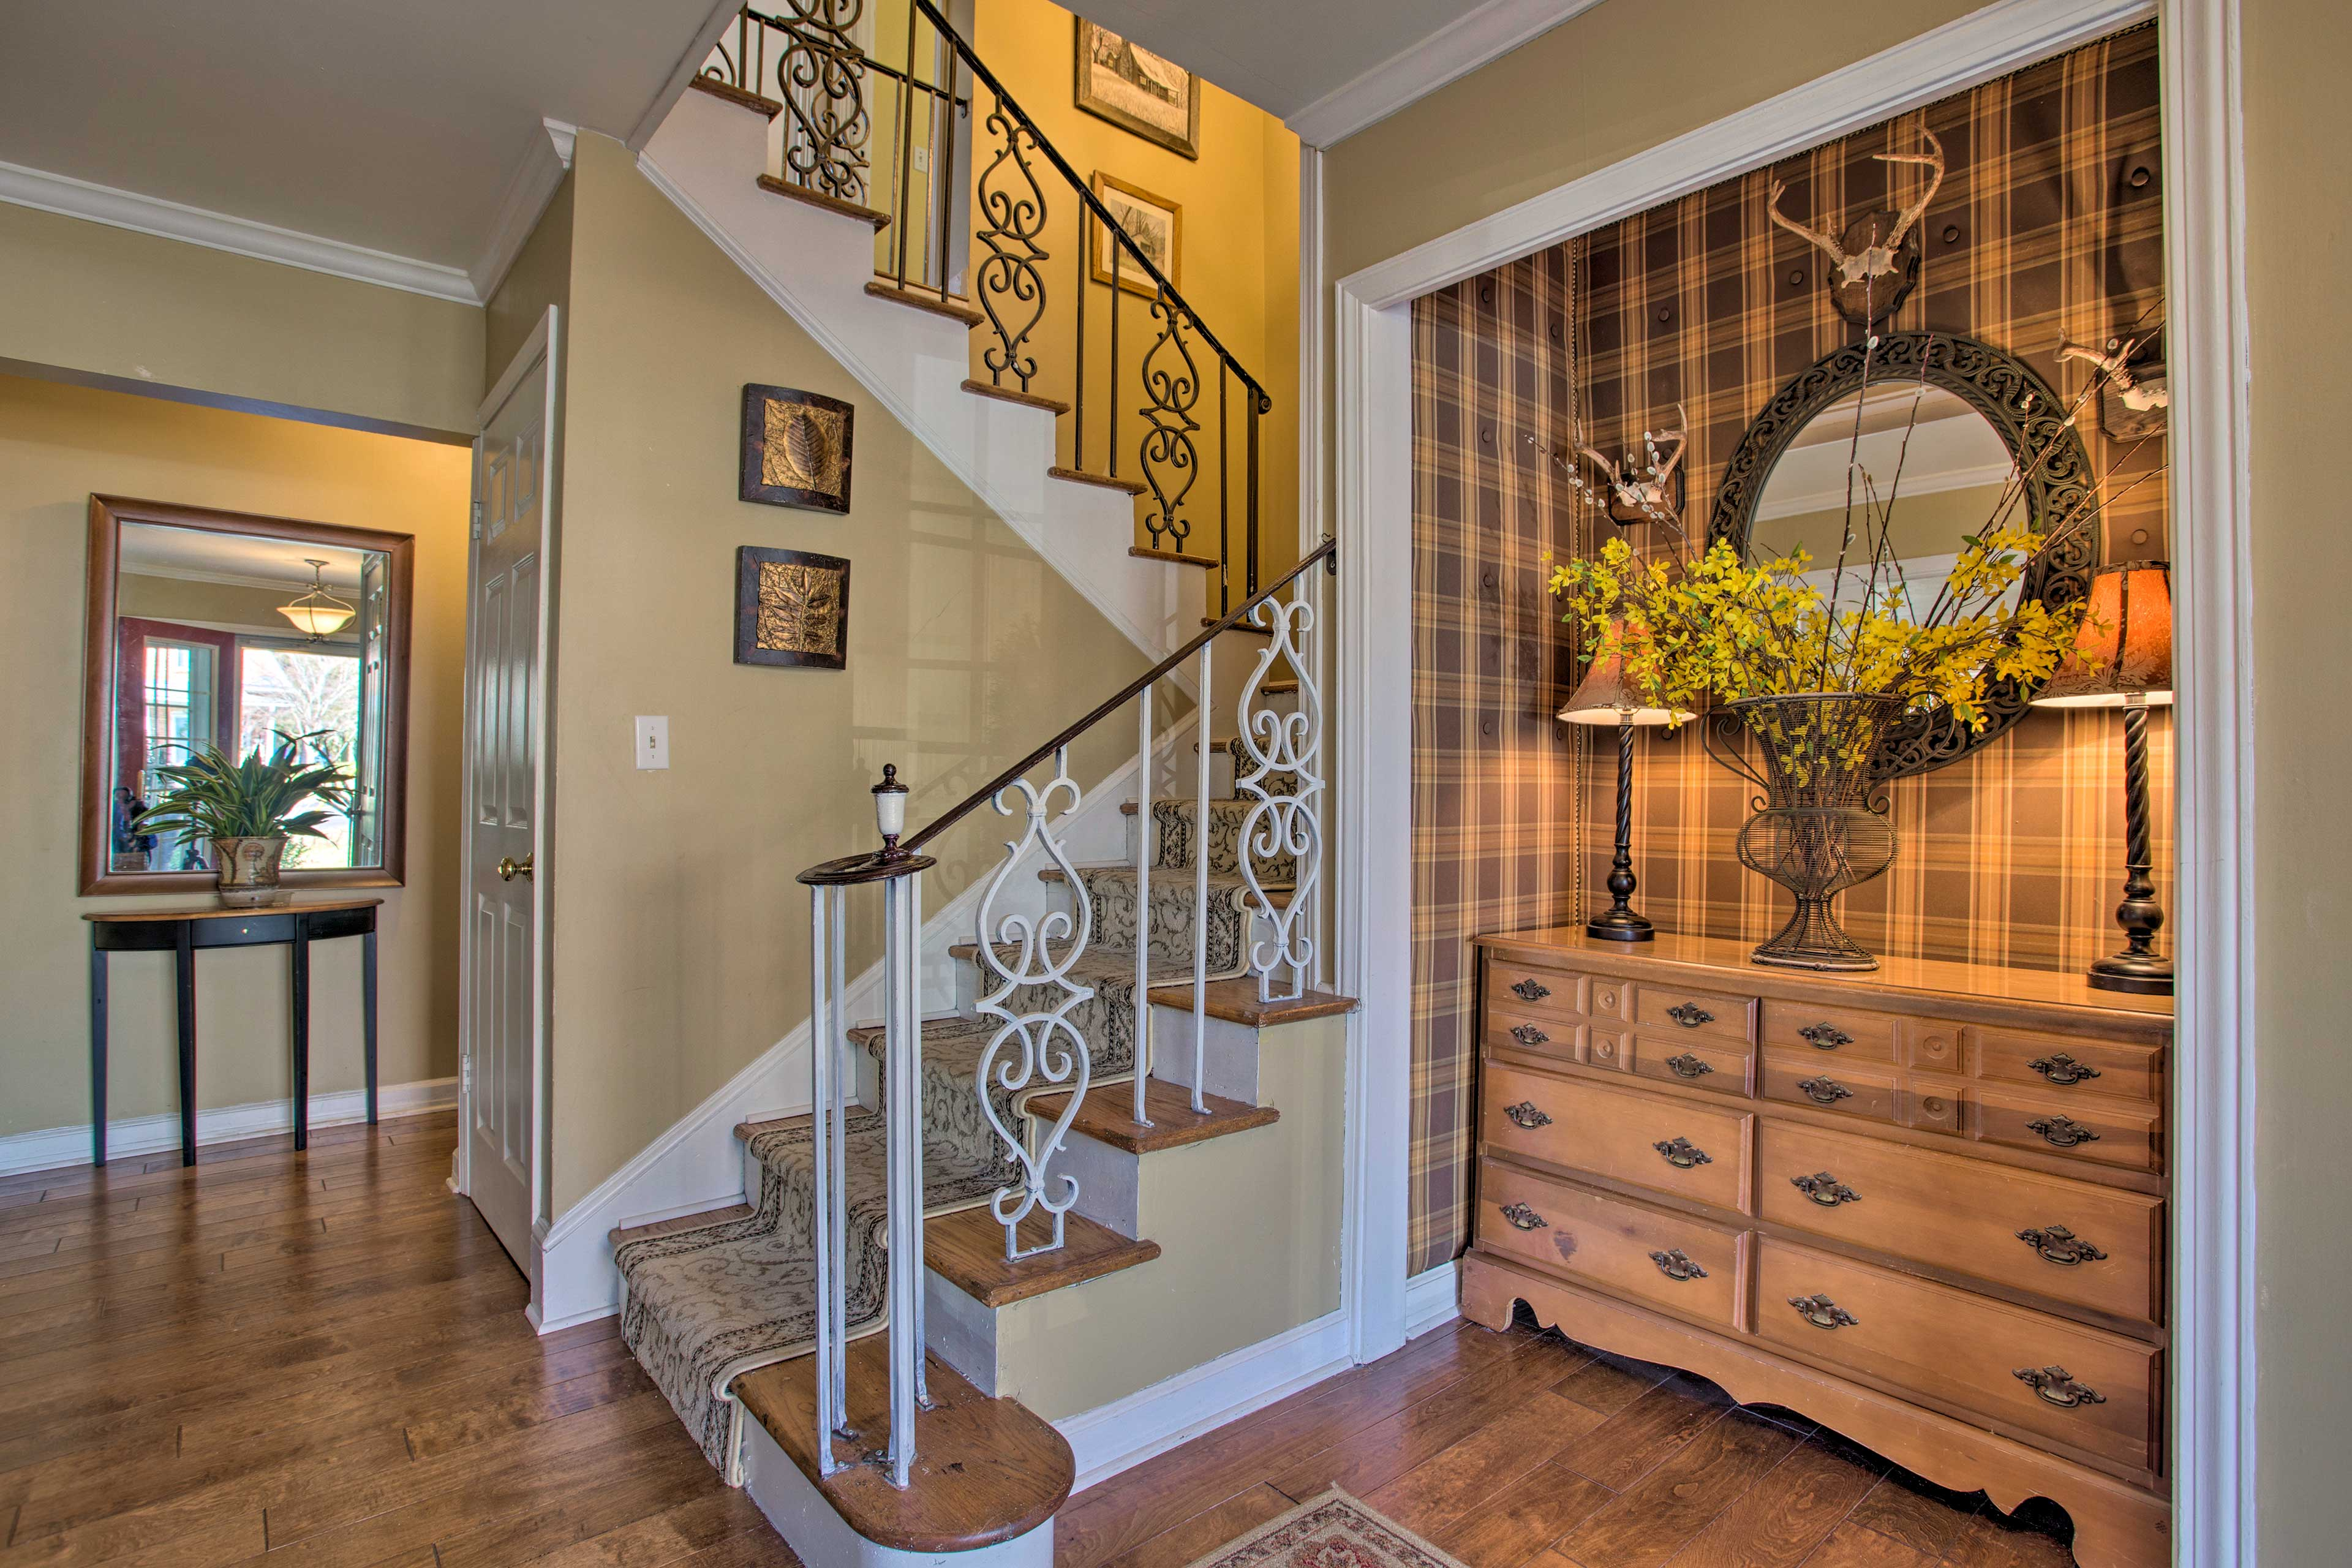 The stairs lead to all of the bedrooms except for Contree Loop.